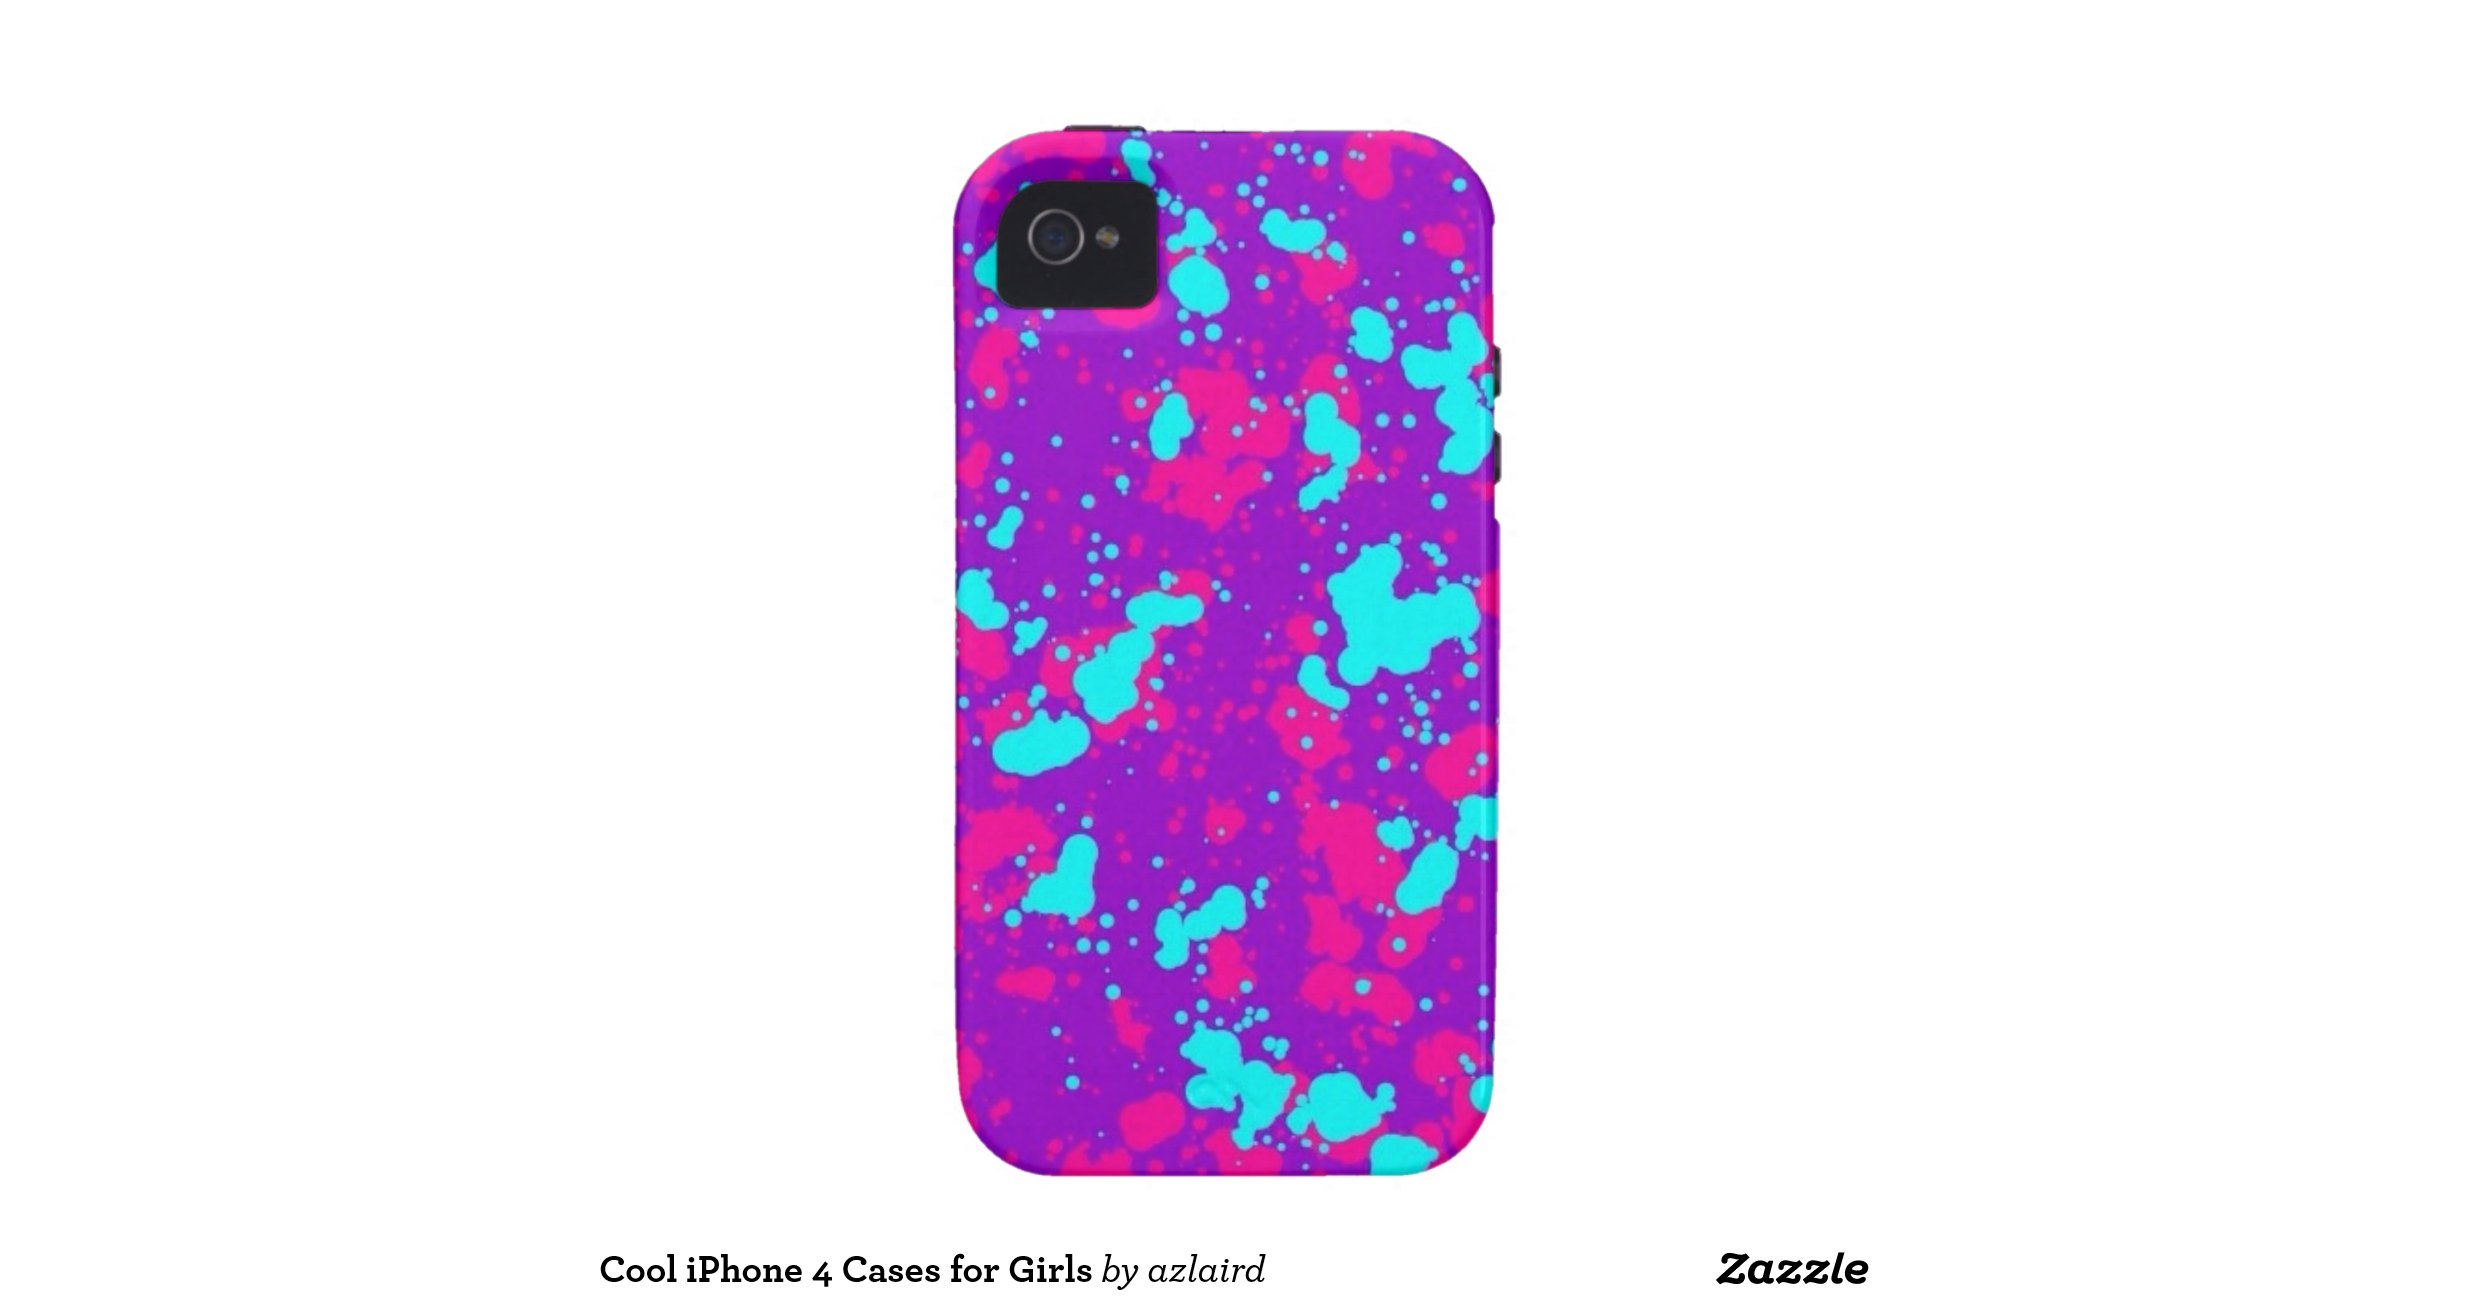 iphone 4 cases for girls cool iphone 4 cases for girls 17331